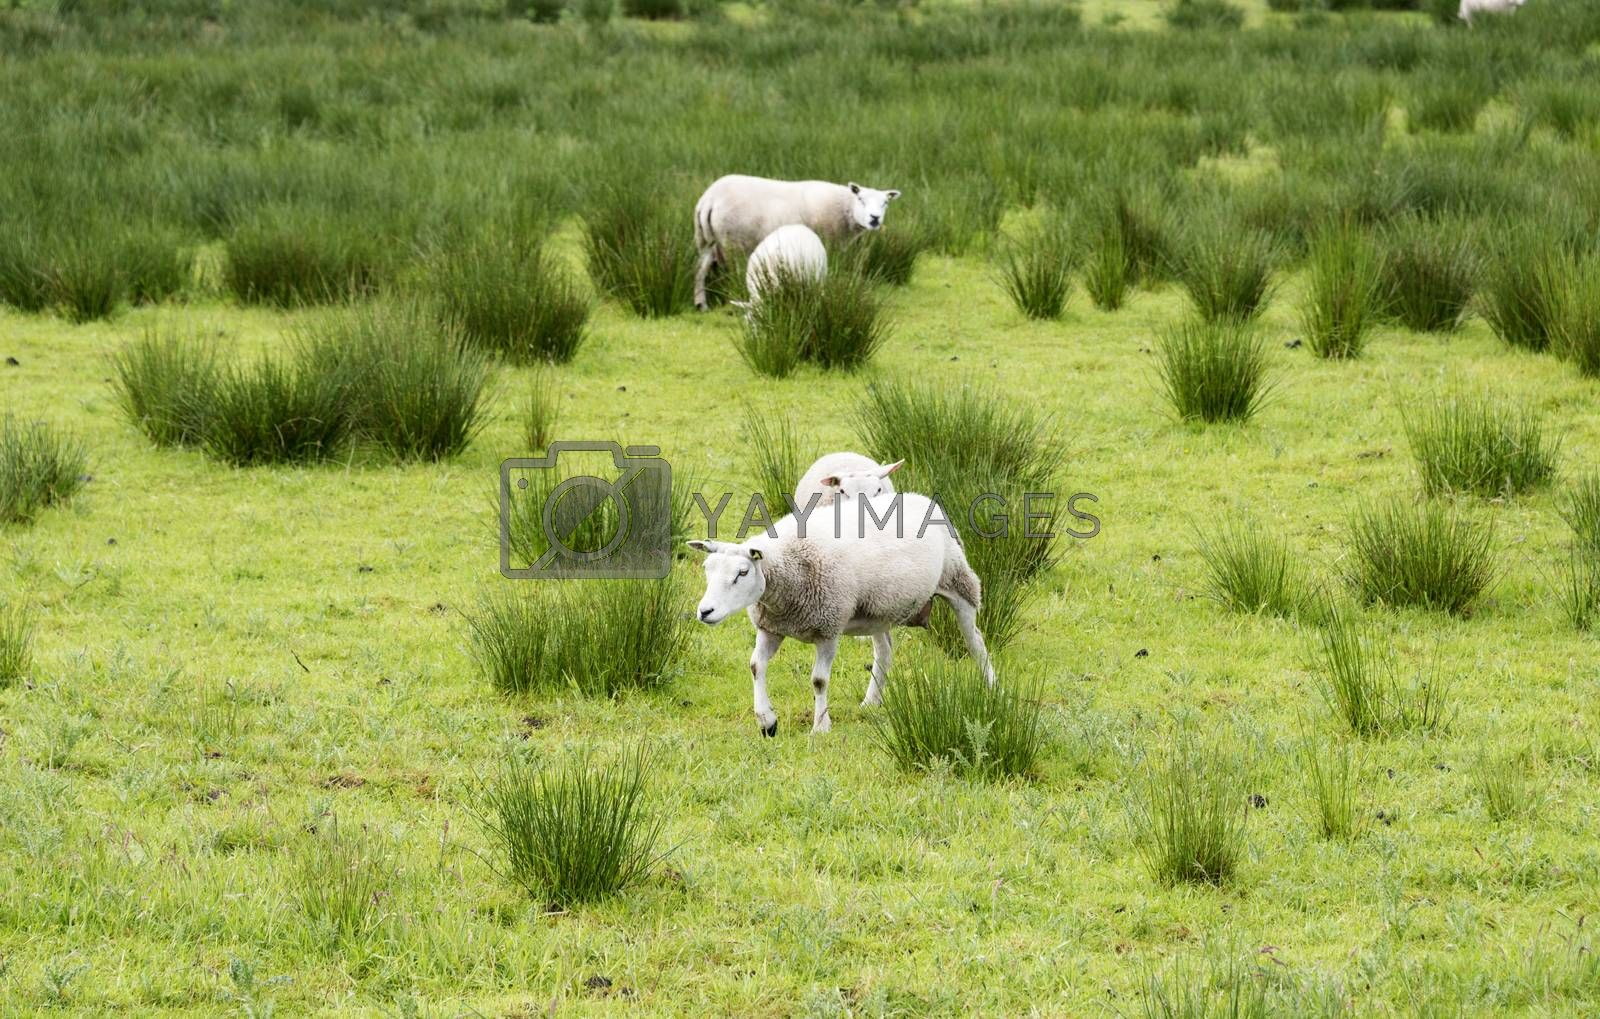 sheep grazing on field with green grass